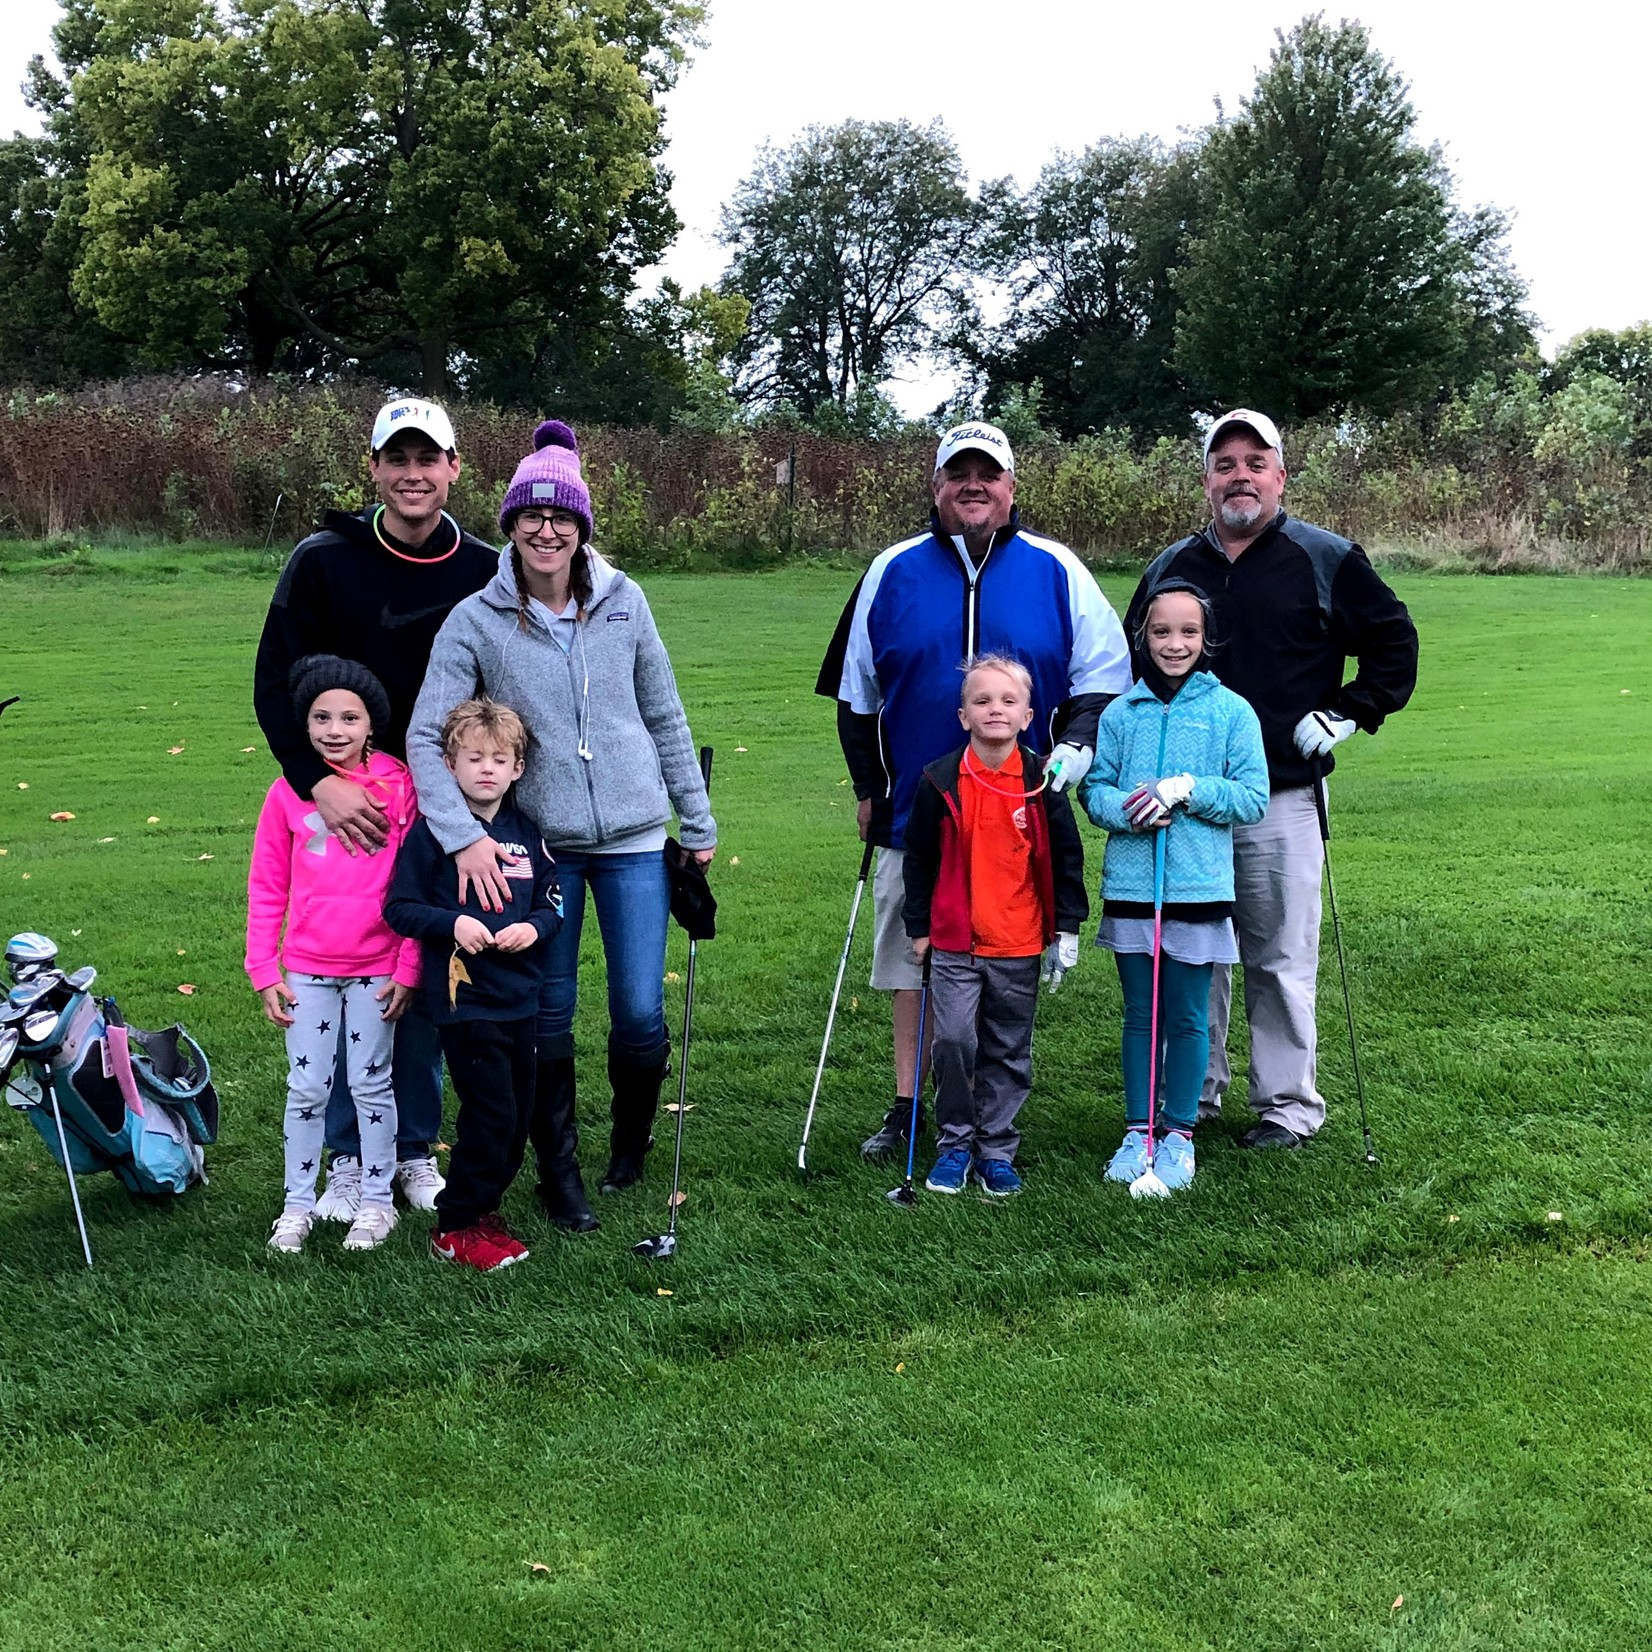 Golf Performance Academy Family Night at the Range - 60 Minute Group Lesson